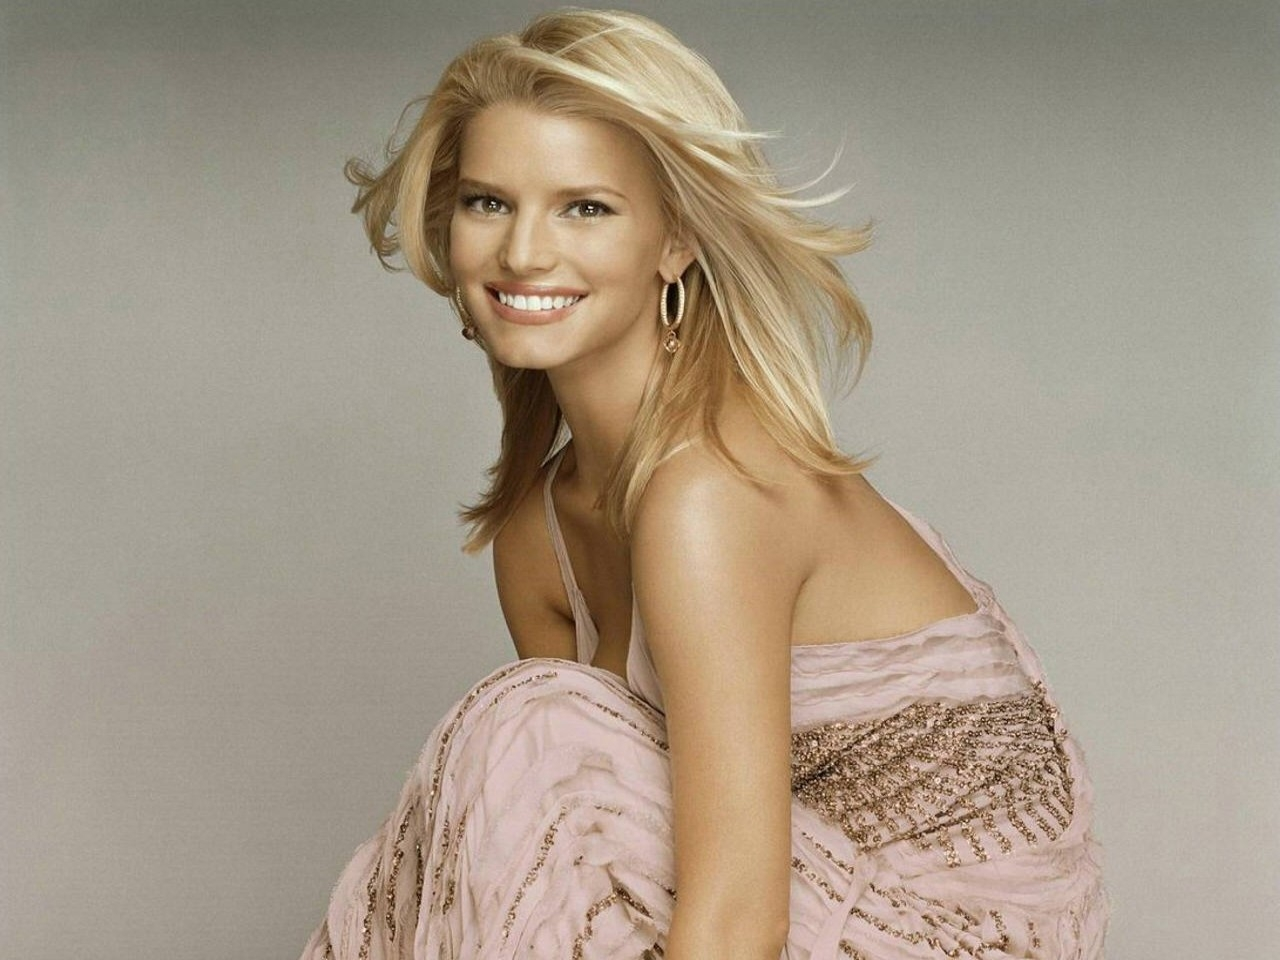 Wallpaper di Jessica Simpson, bella in rosa